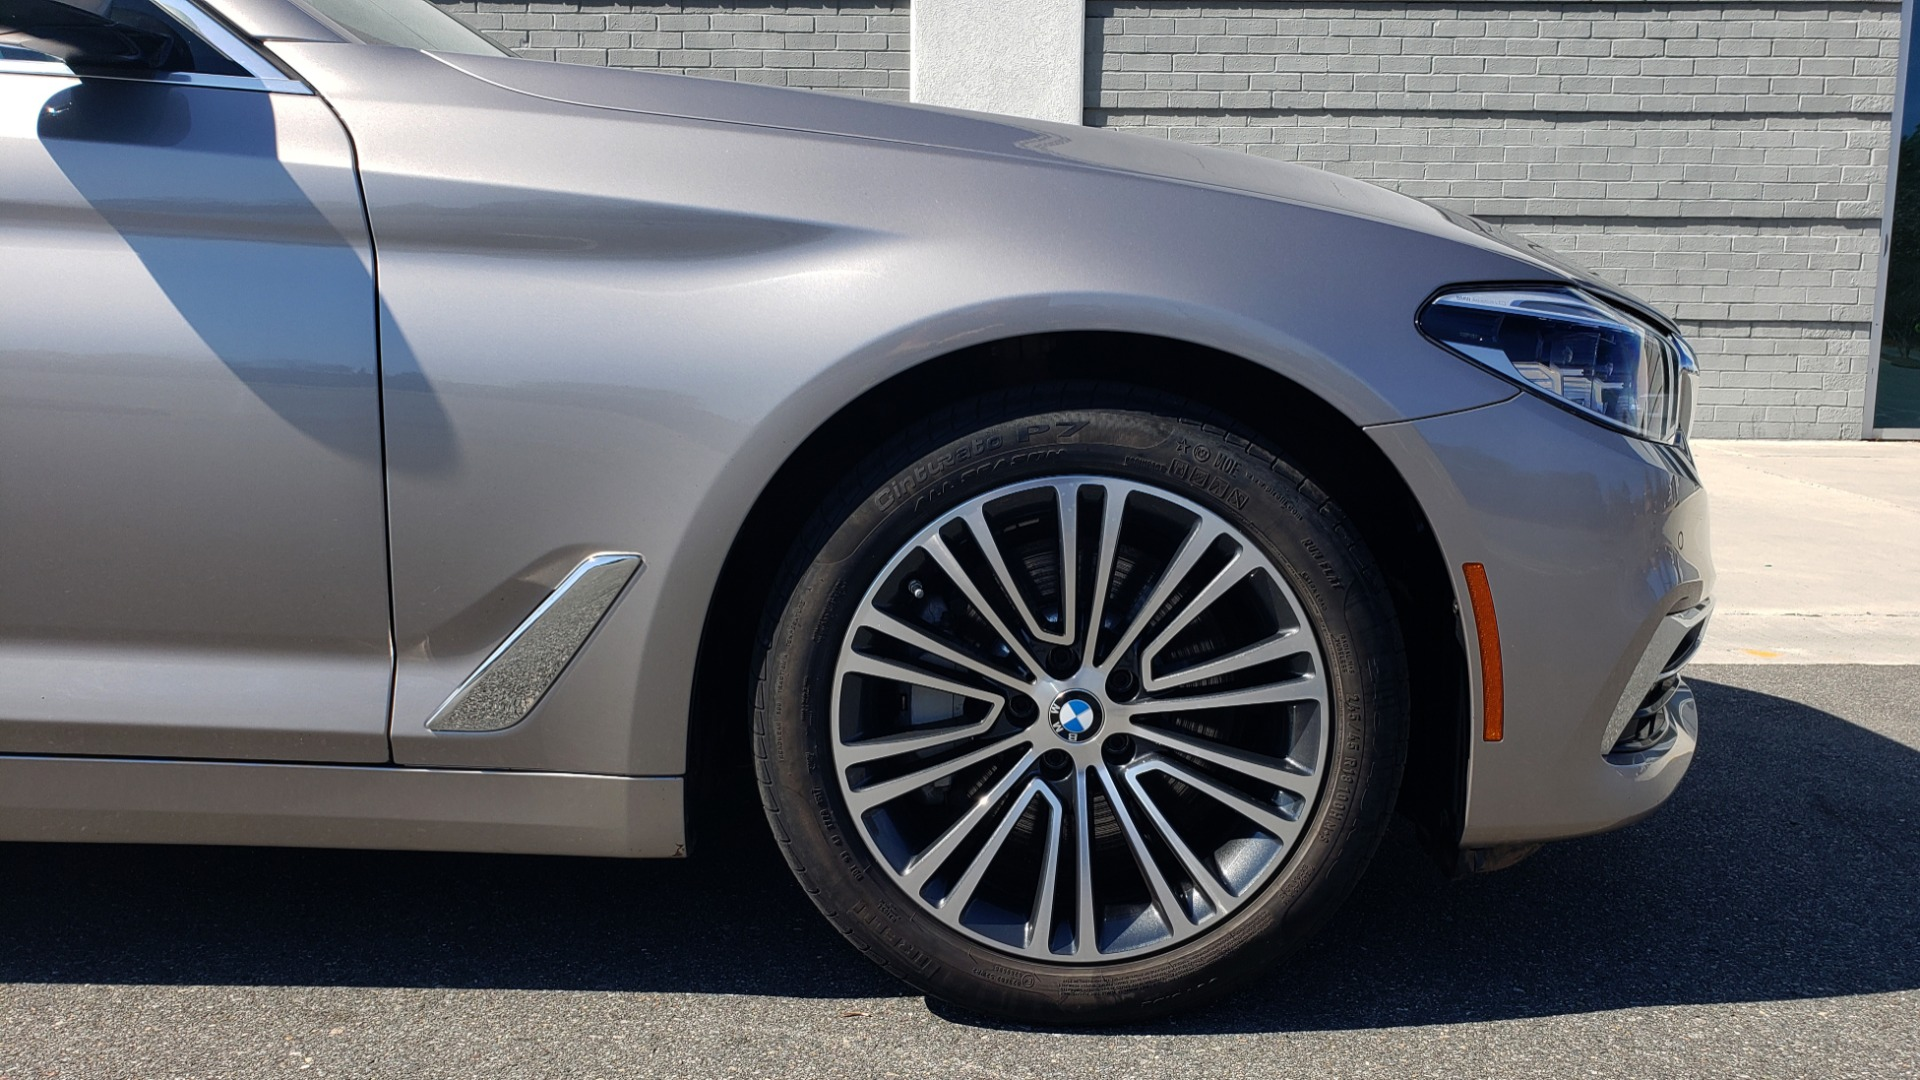 Used 2018 BMW 5 SERIES 540IXDRIVE PREMIUM / DRVR ASST PLUS / LUX PKG / APPLE CARPLAY for sale Sold at Formula Imports in Charlotte NC 28227 75